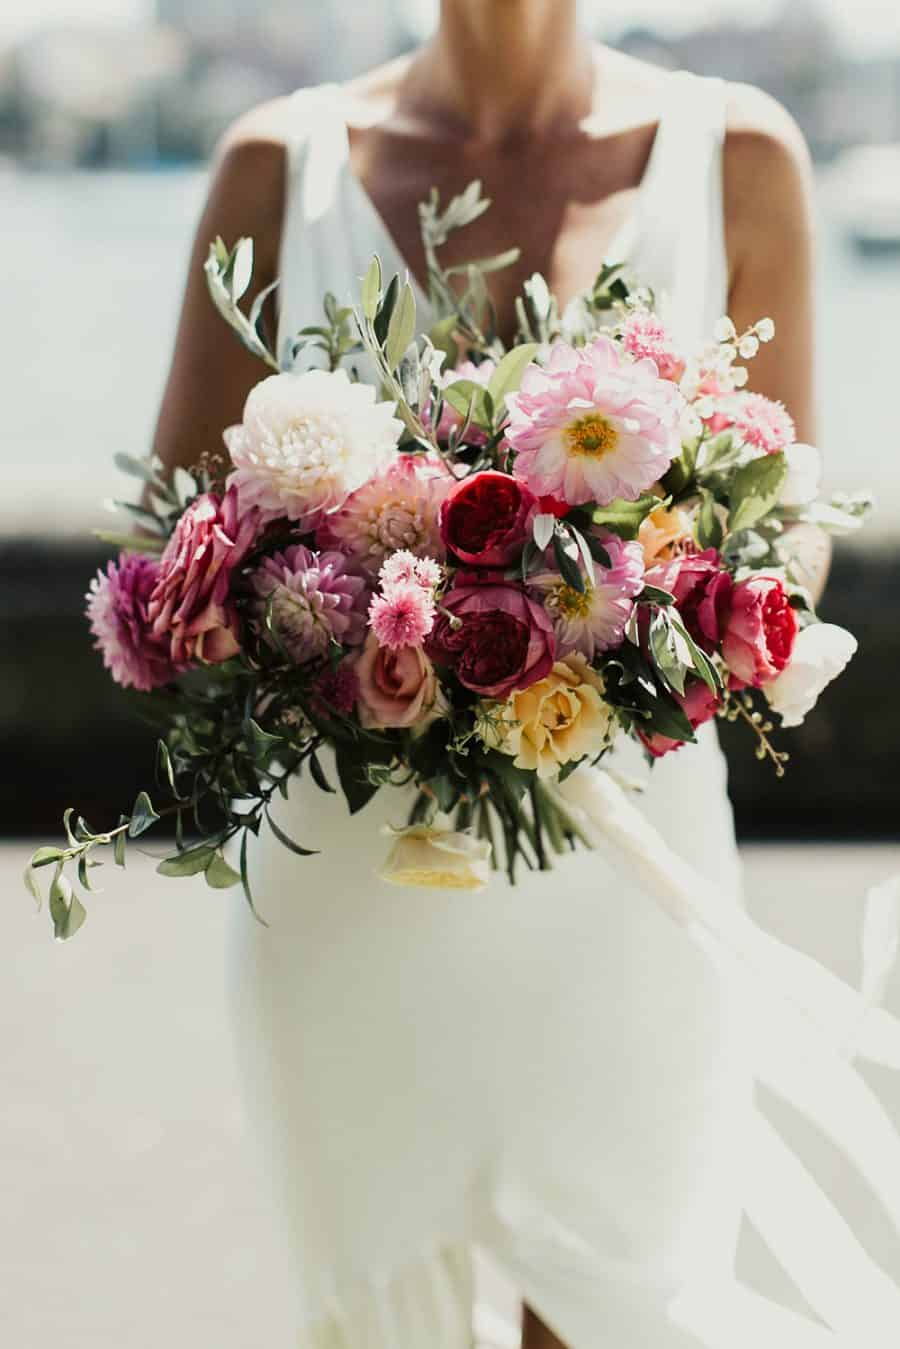 best wedding bouquets 2016 - pink peony bouquet